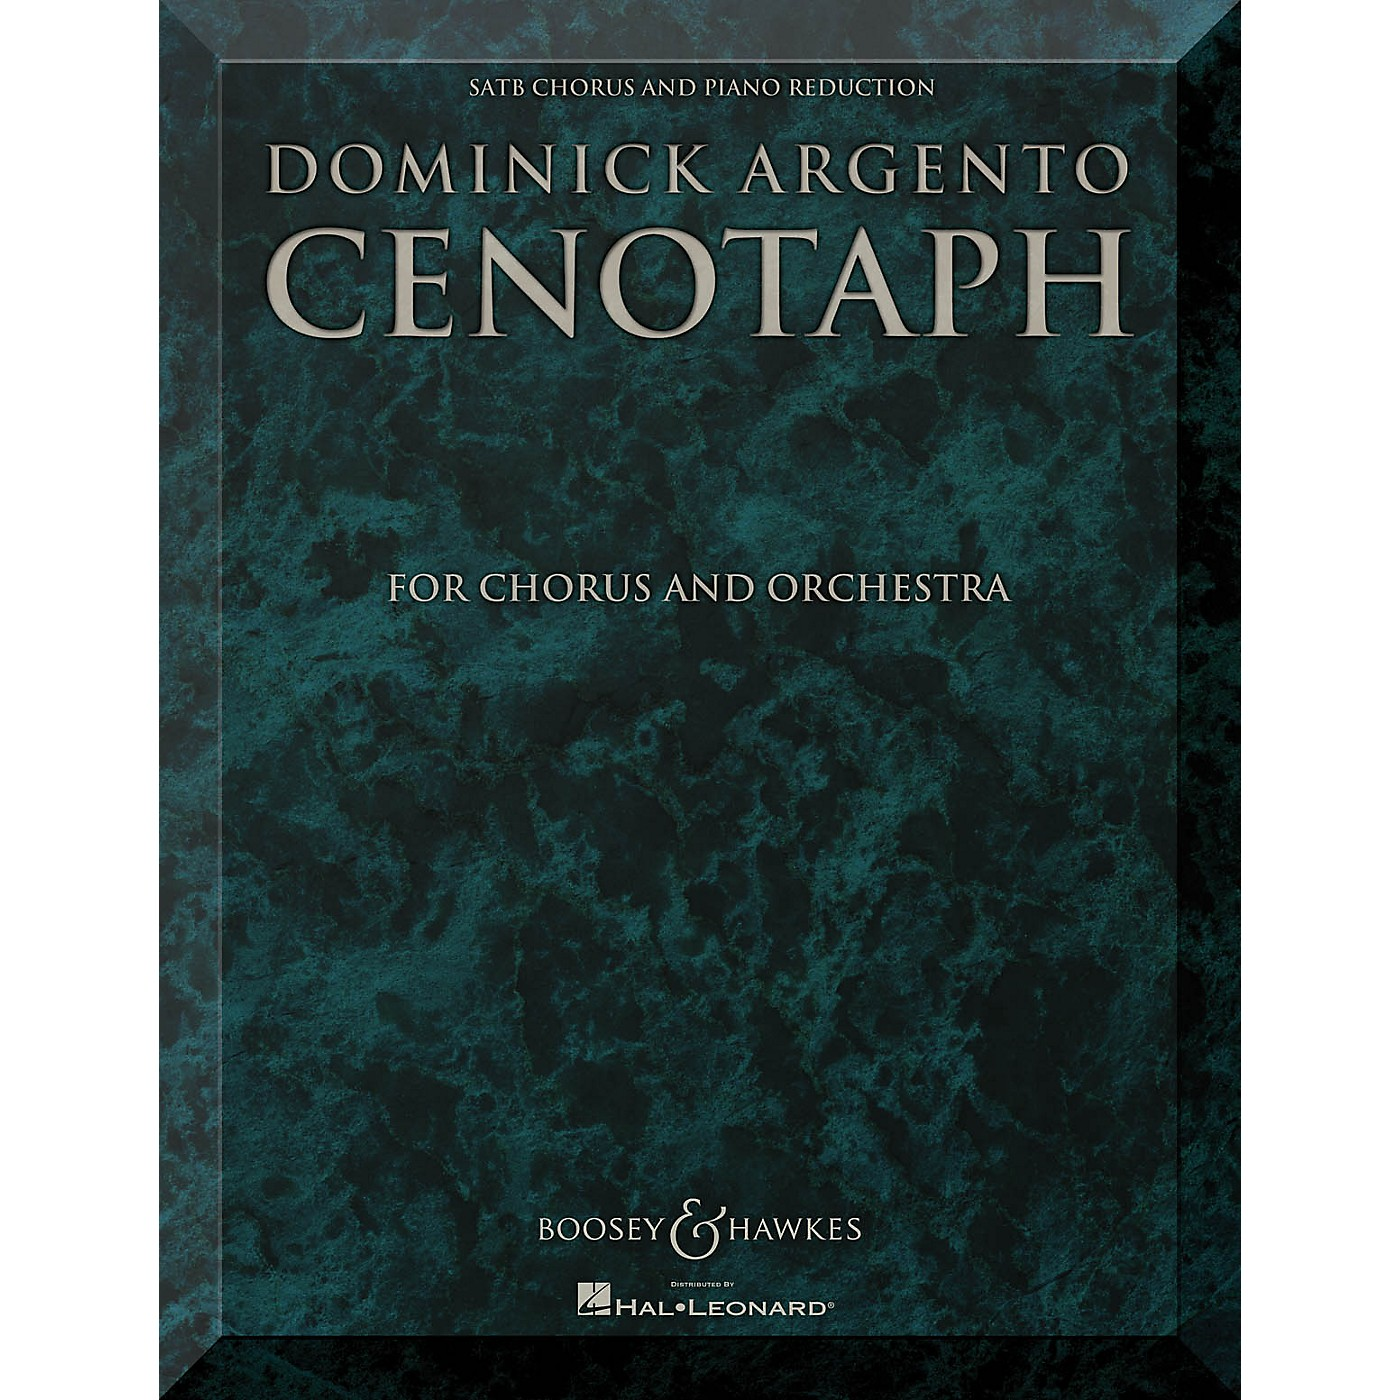 Boosey and Hawkes Cenotaph (Chorus and Orchestra SATB Chorus and Piano Reduction Vocal Score) composed by Dominick Argento thumbnail